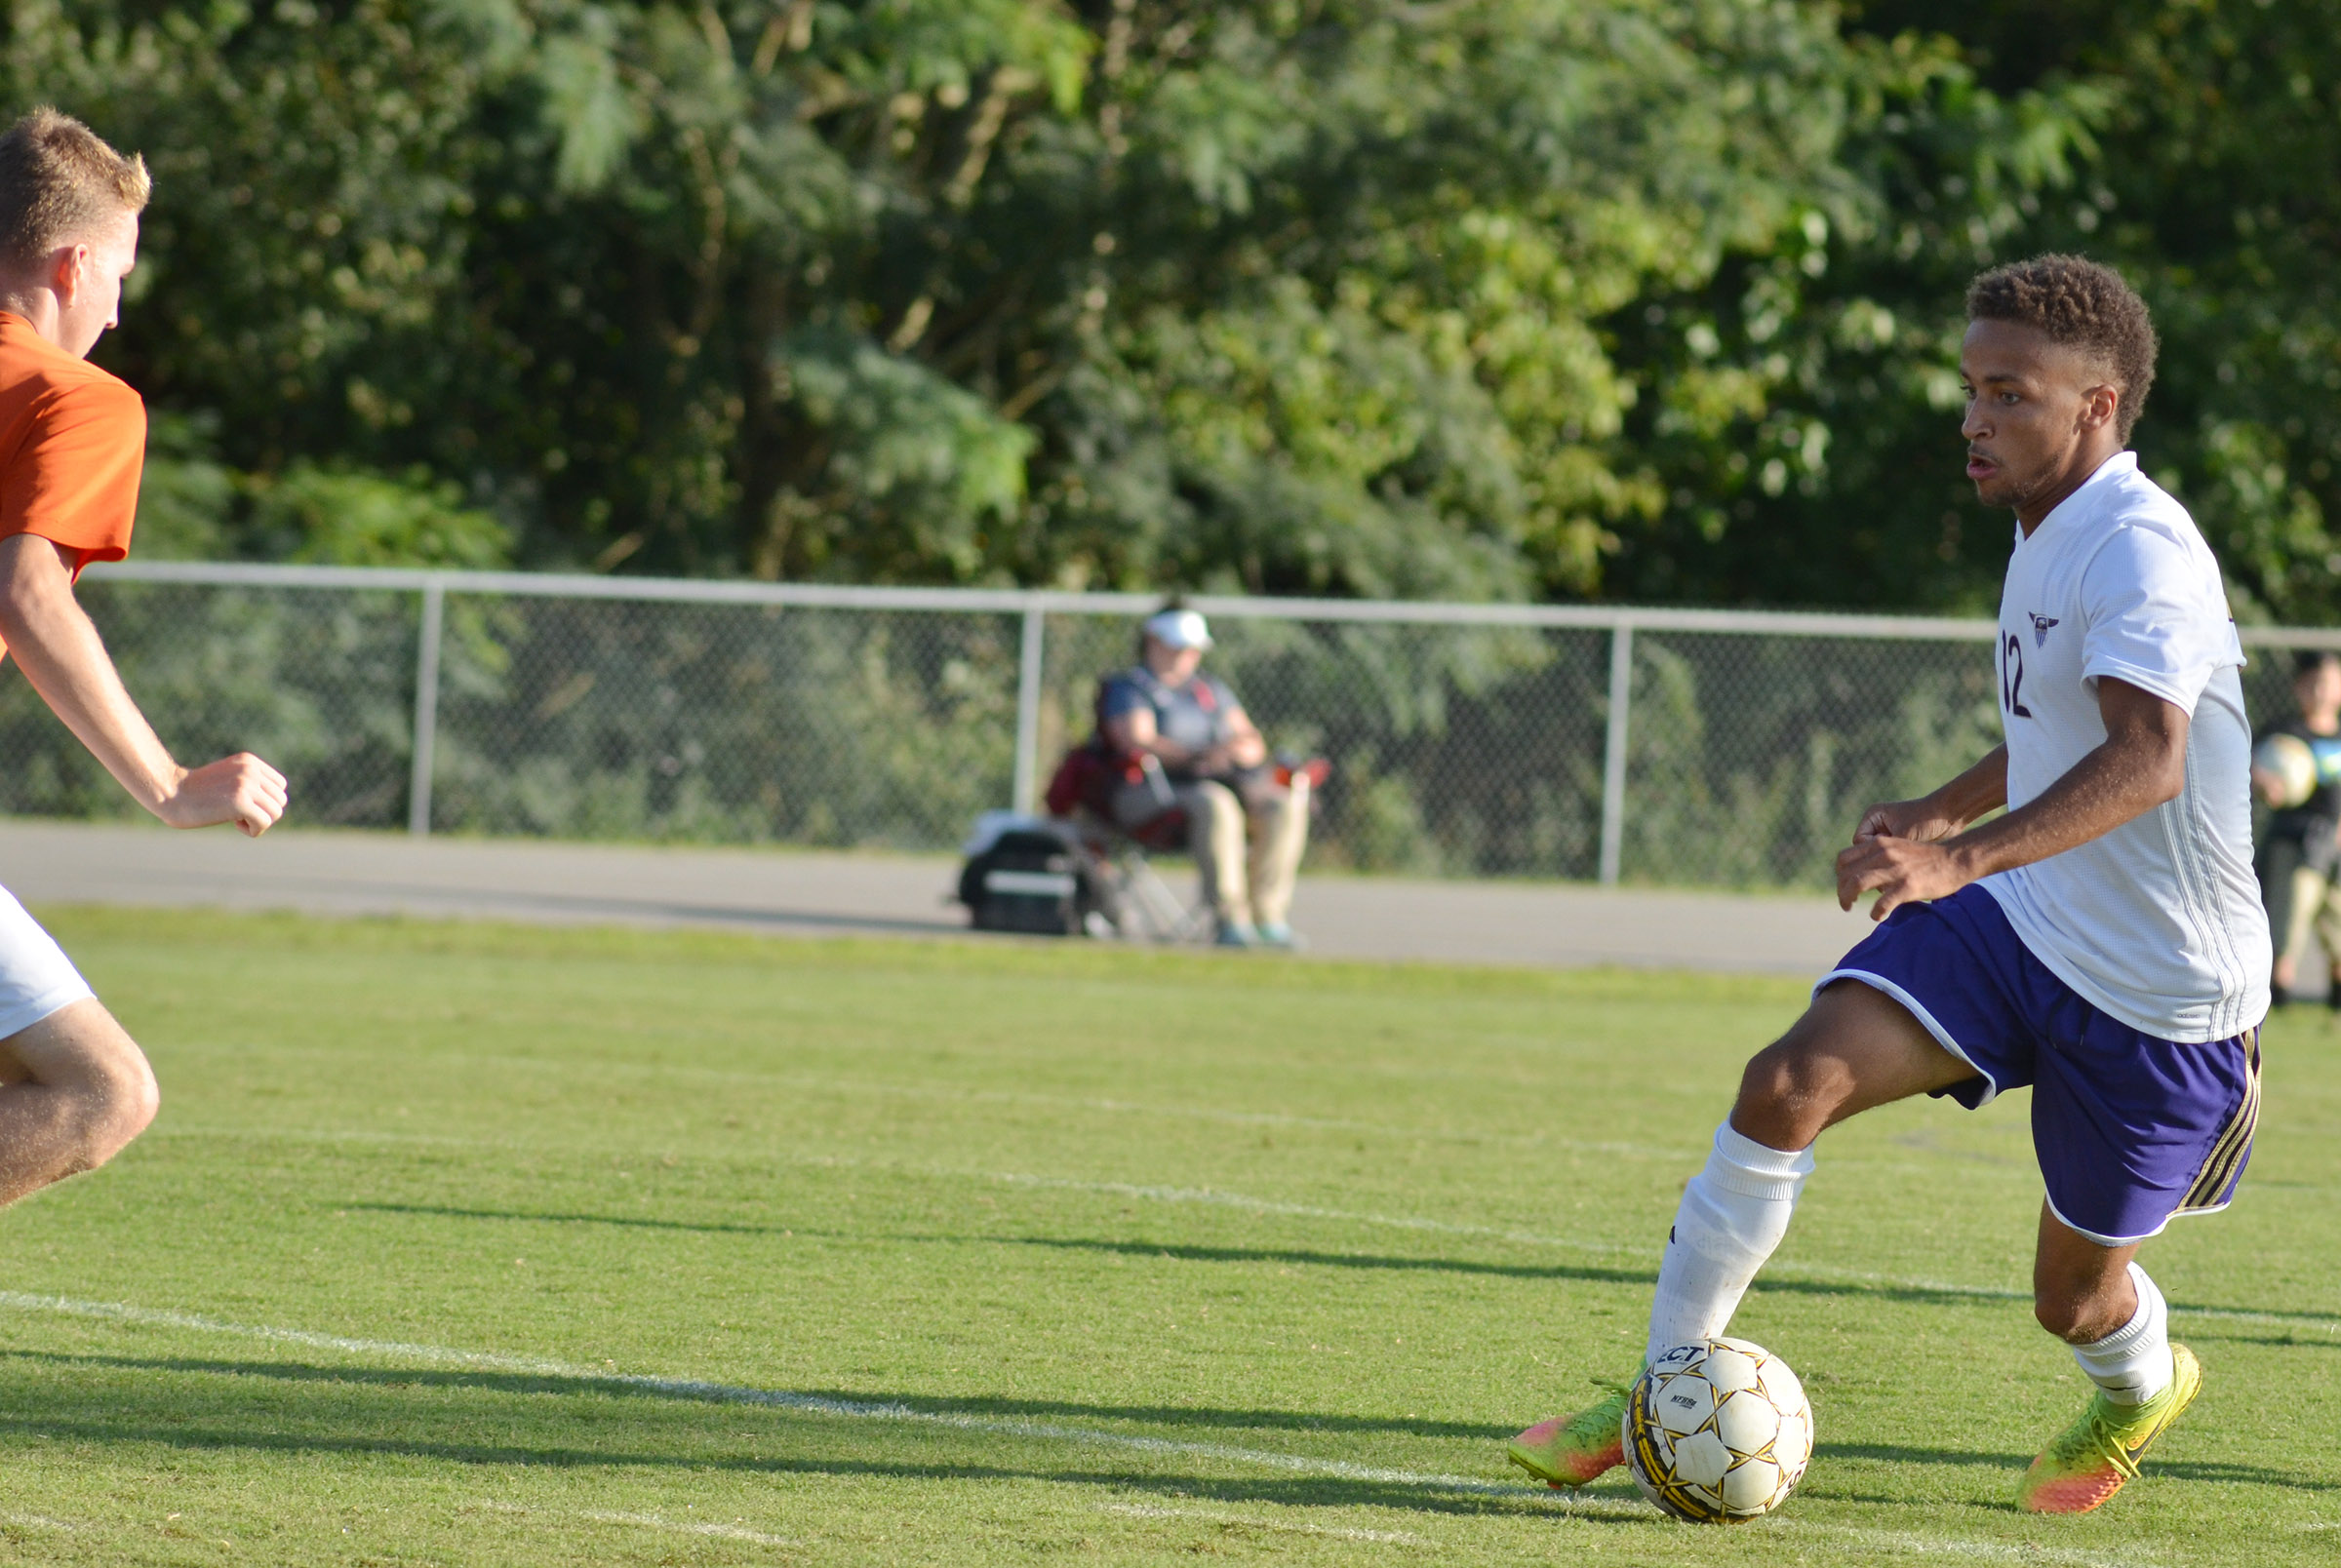 CHS senior Ethan Lay kicks the ball toward the goal.